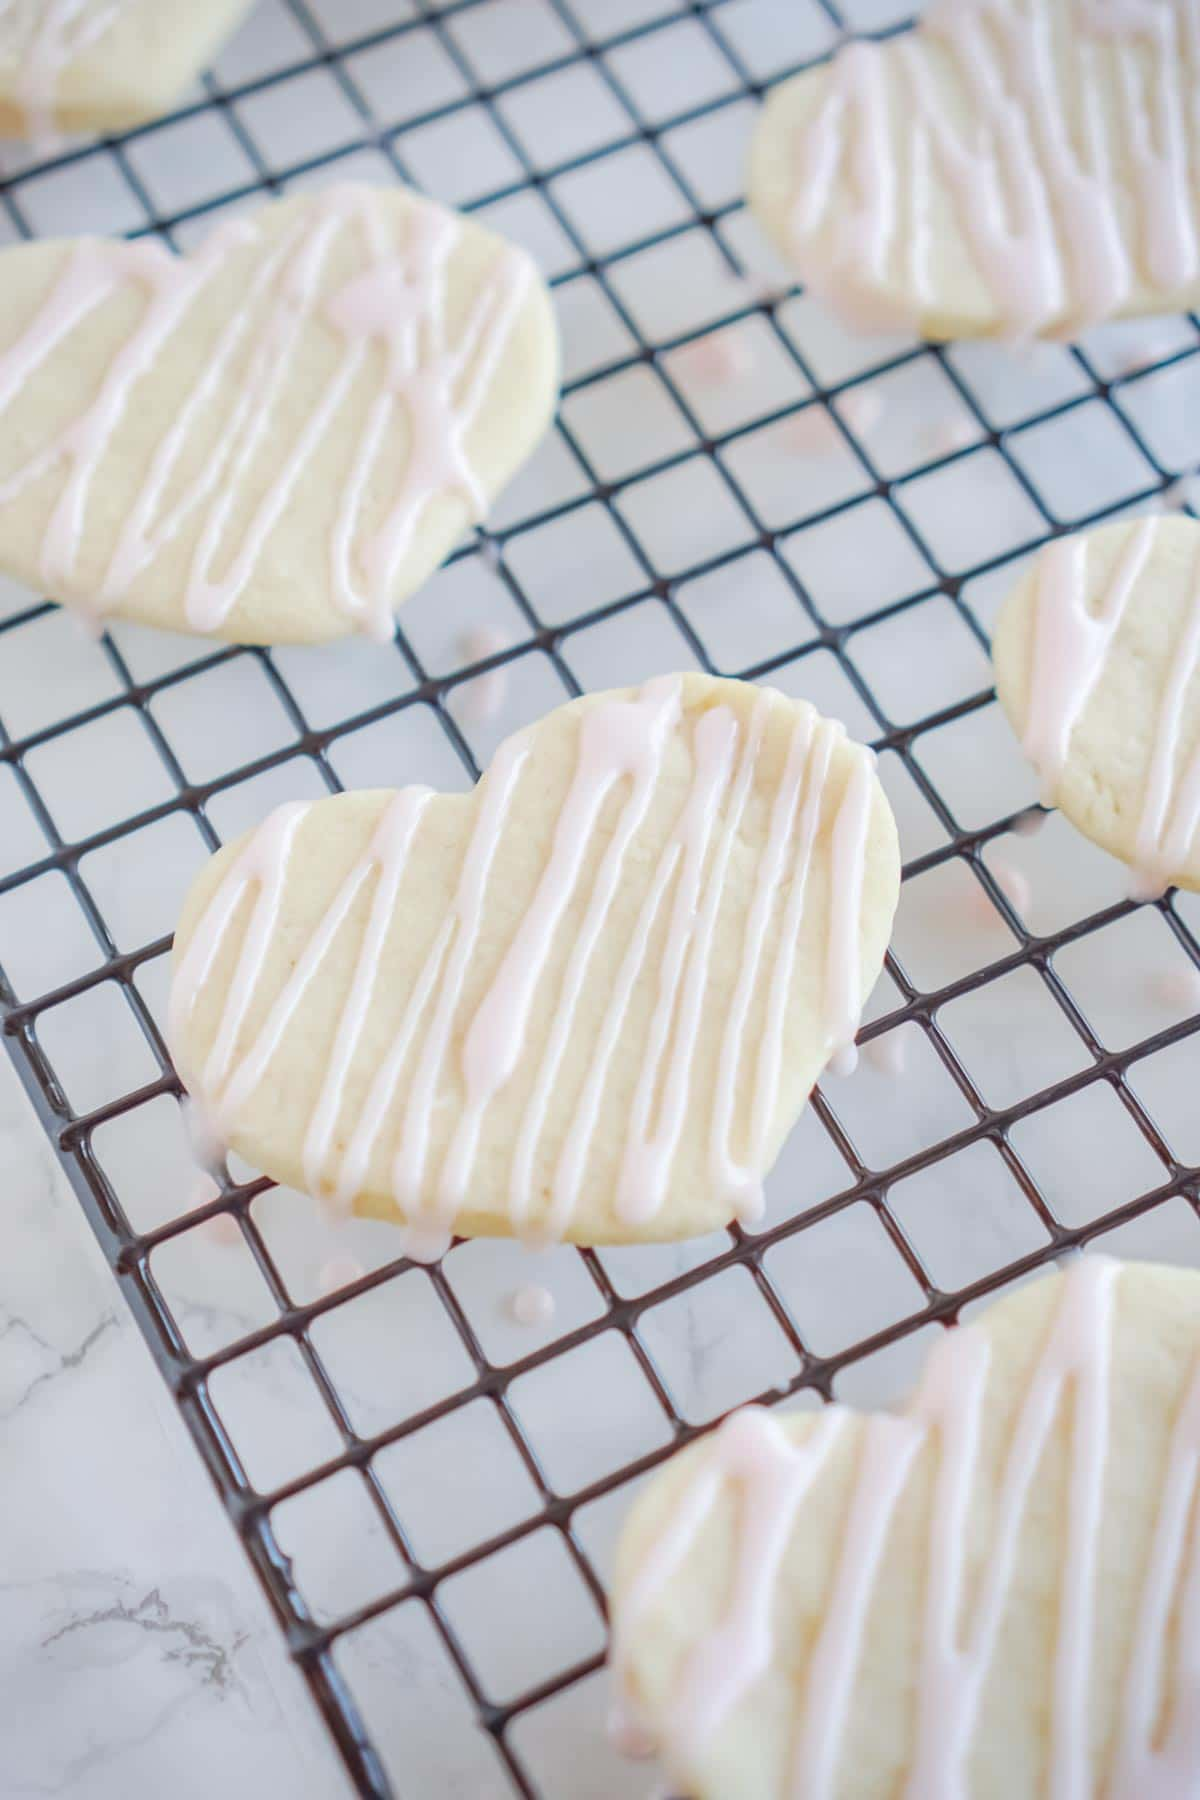 heart shaped cookies with sugar cookie icing on a baking rack